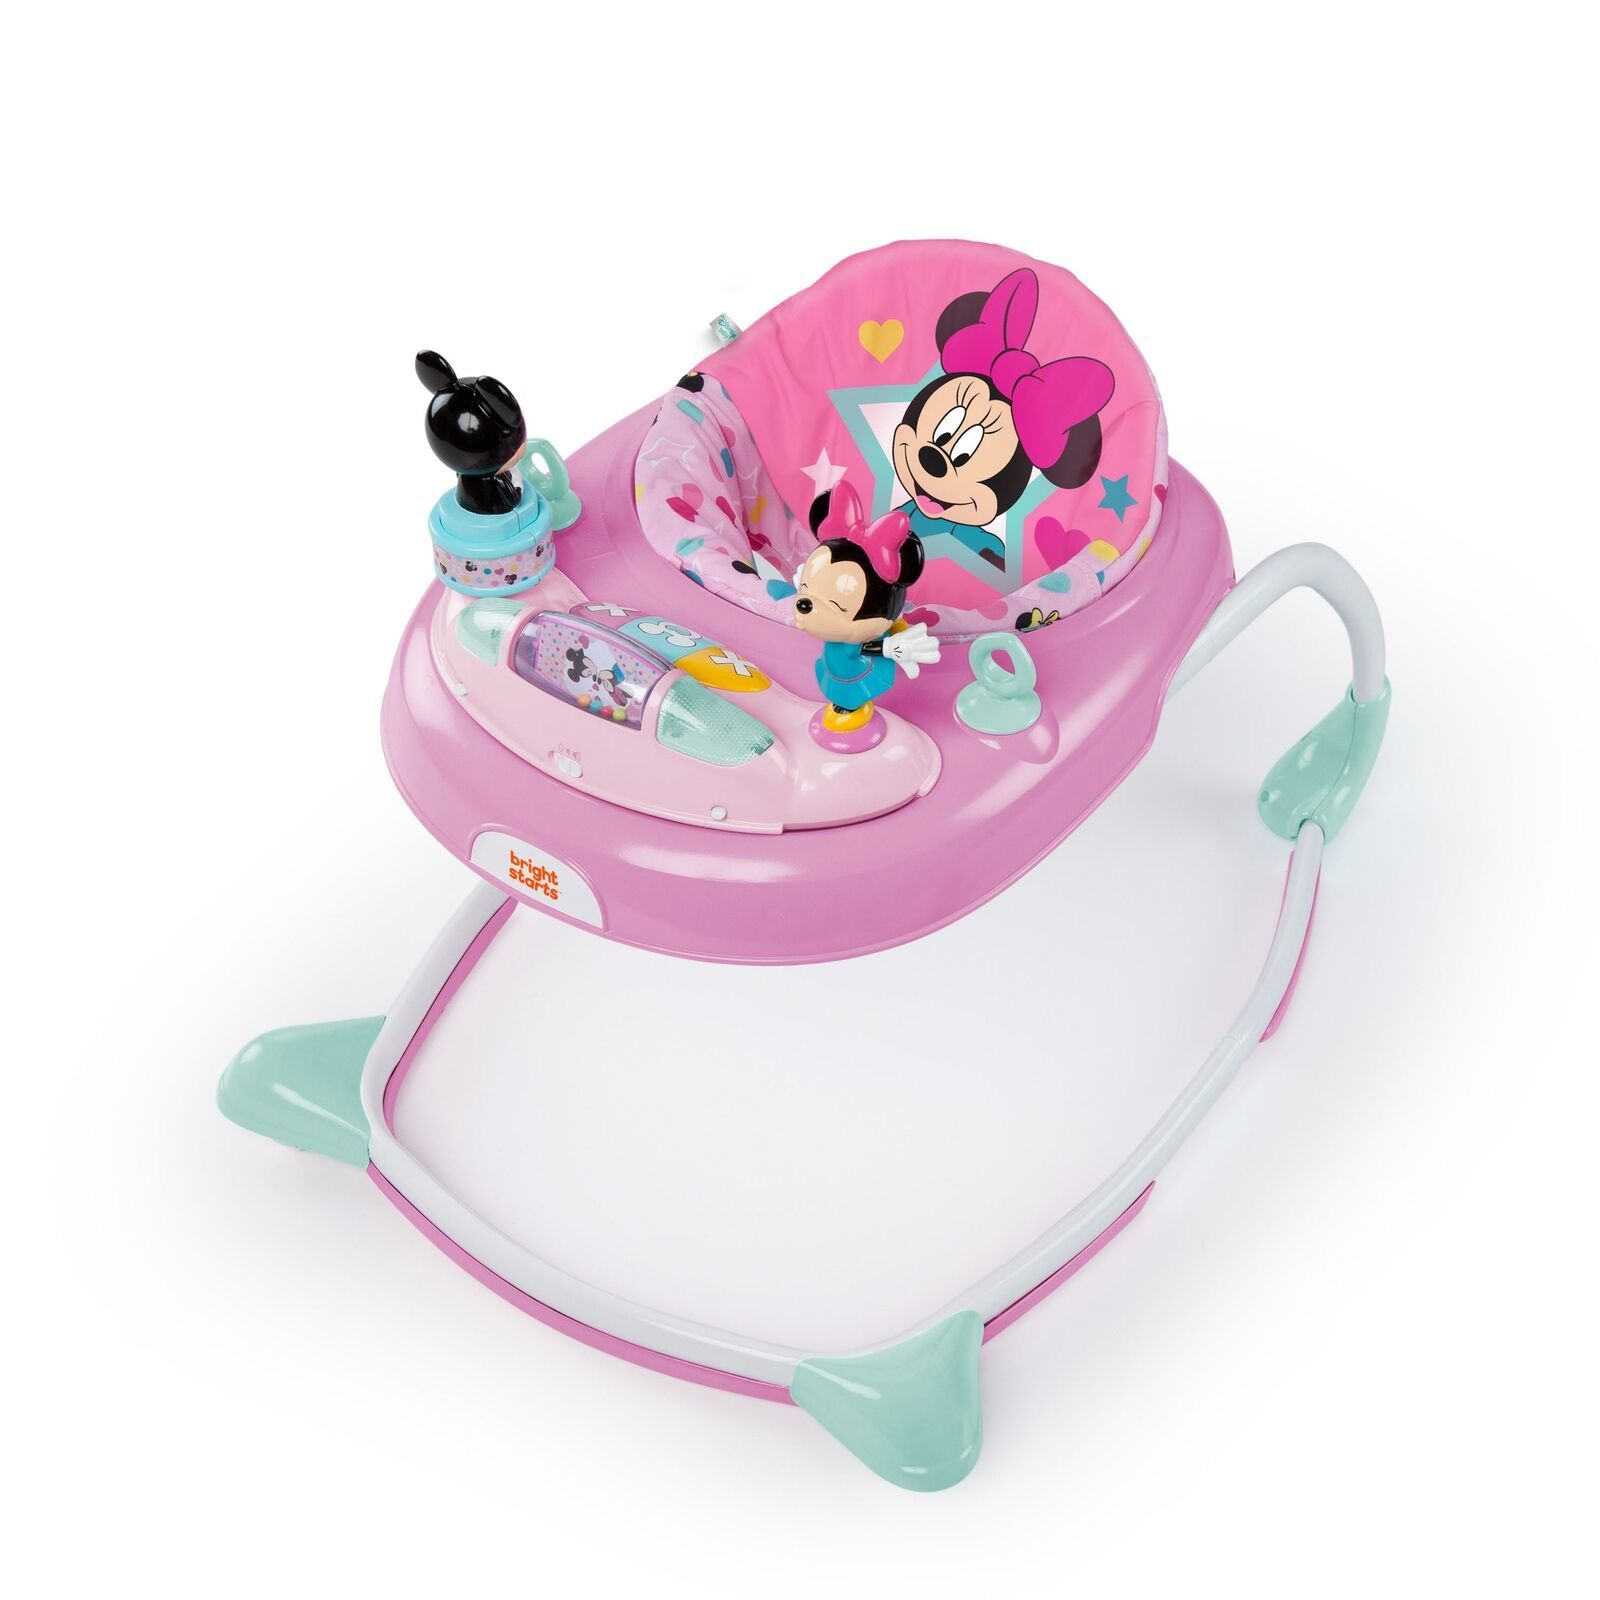 Disney Baby Minnie Mouse Baby Walker Activity Station Stars 3 height positions - $51.47